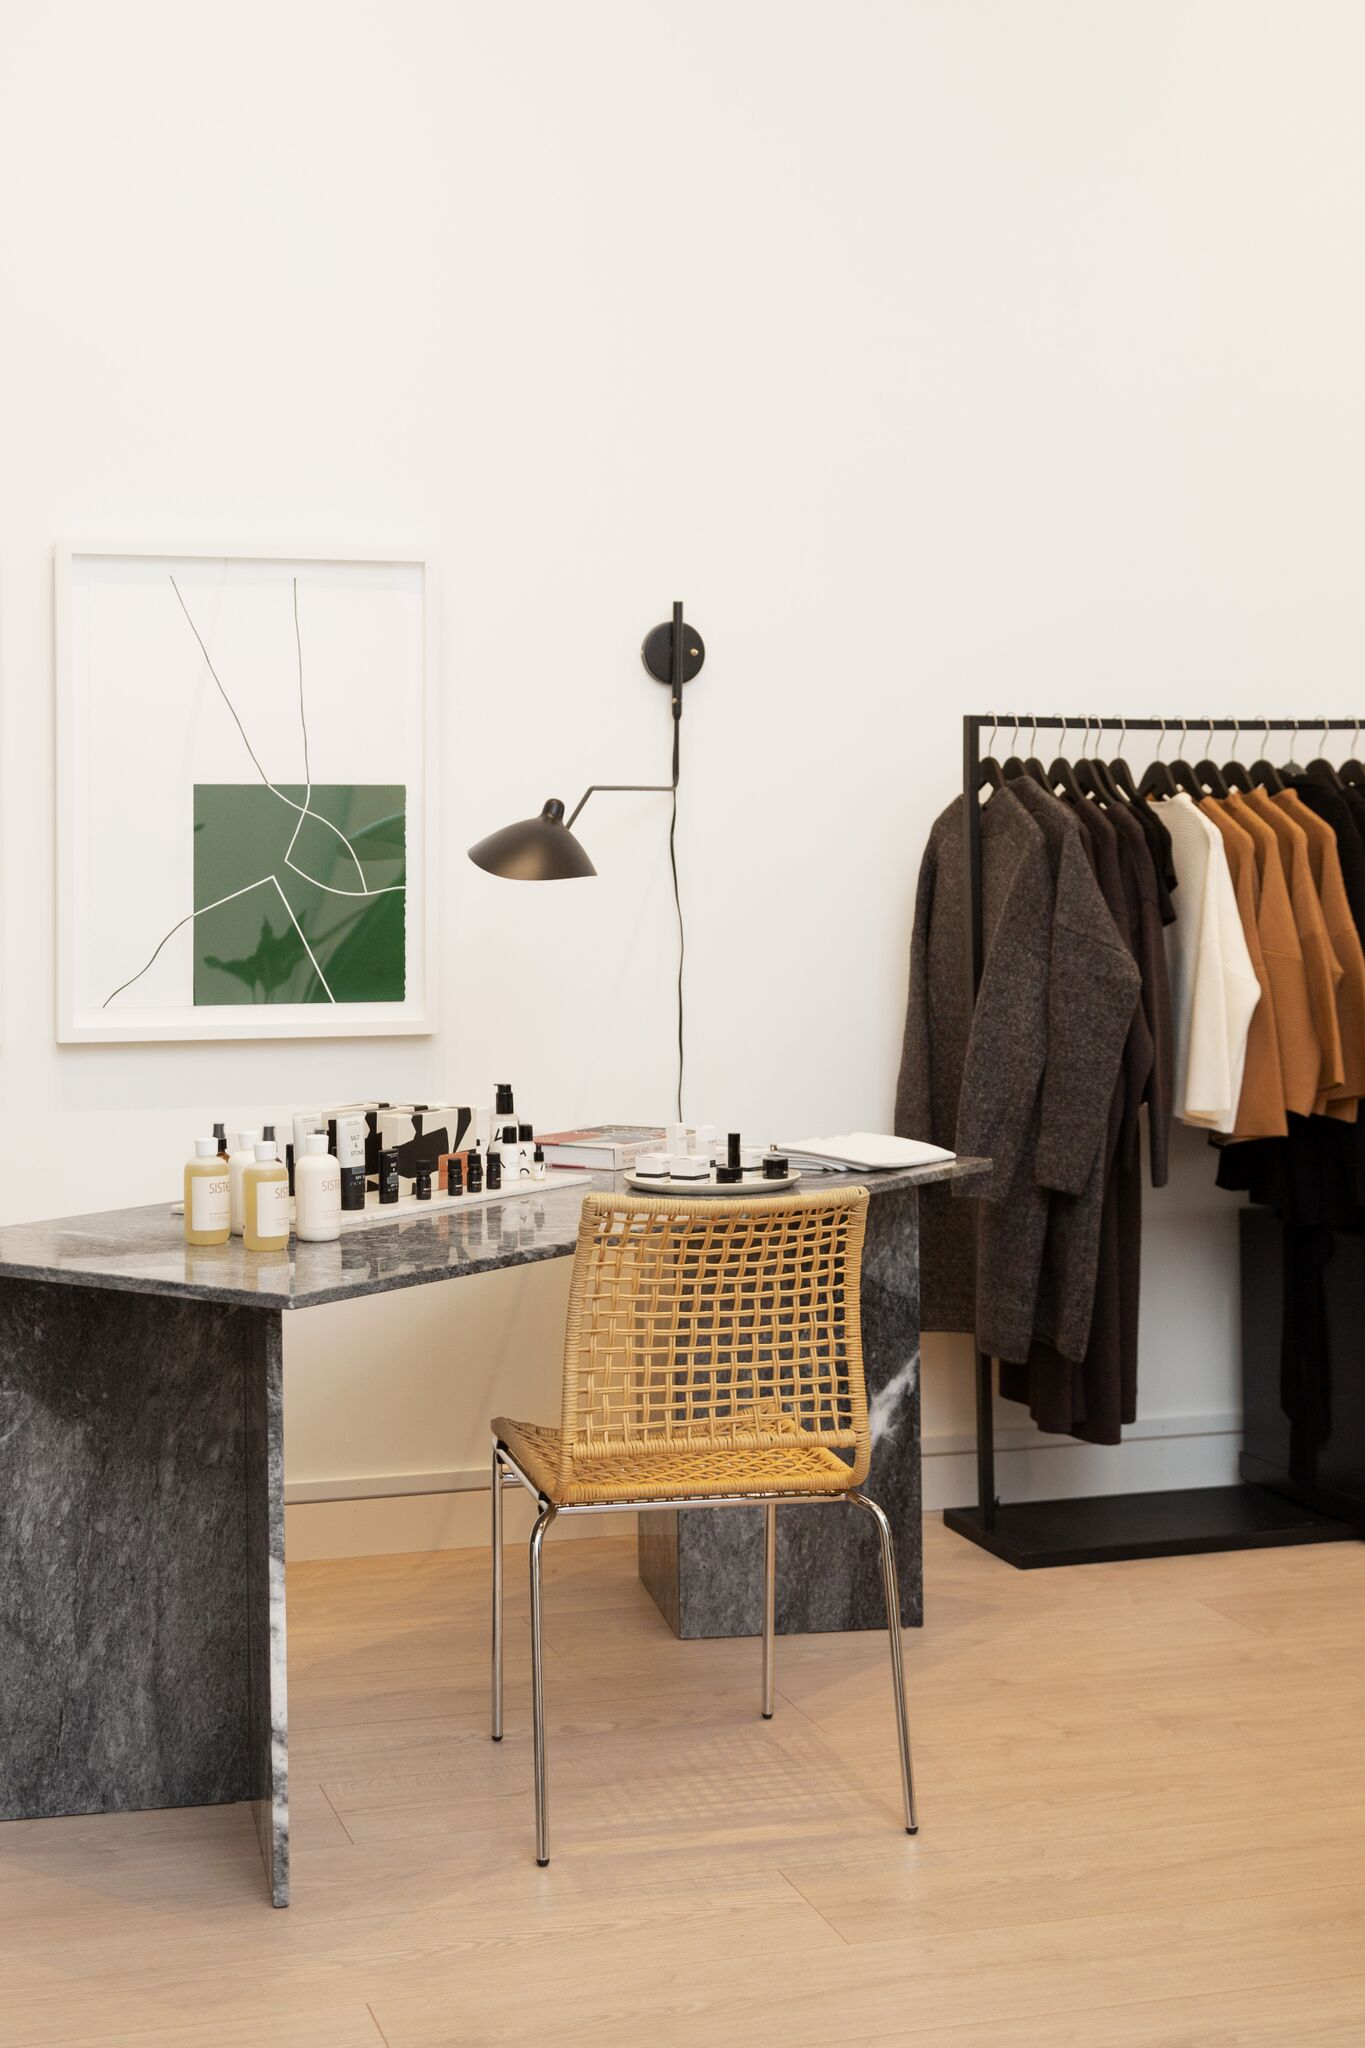 The store feels more like a home than a traditional retail space